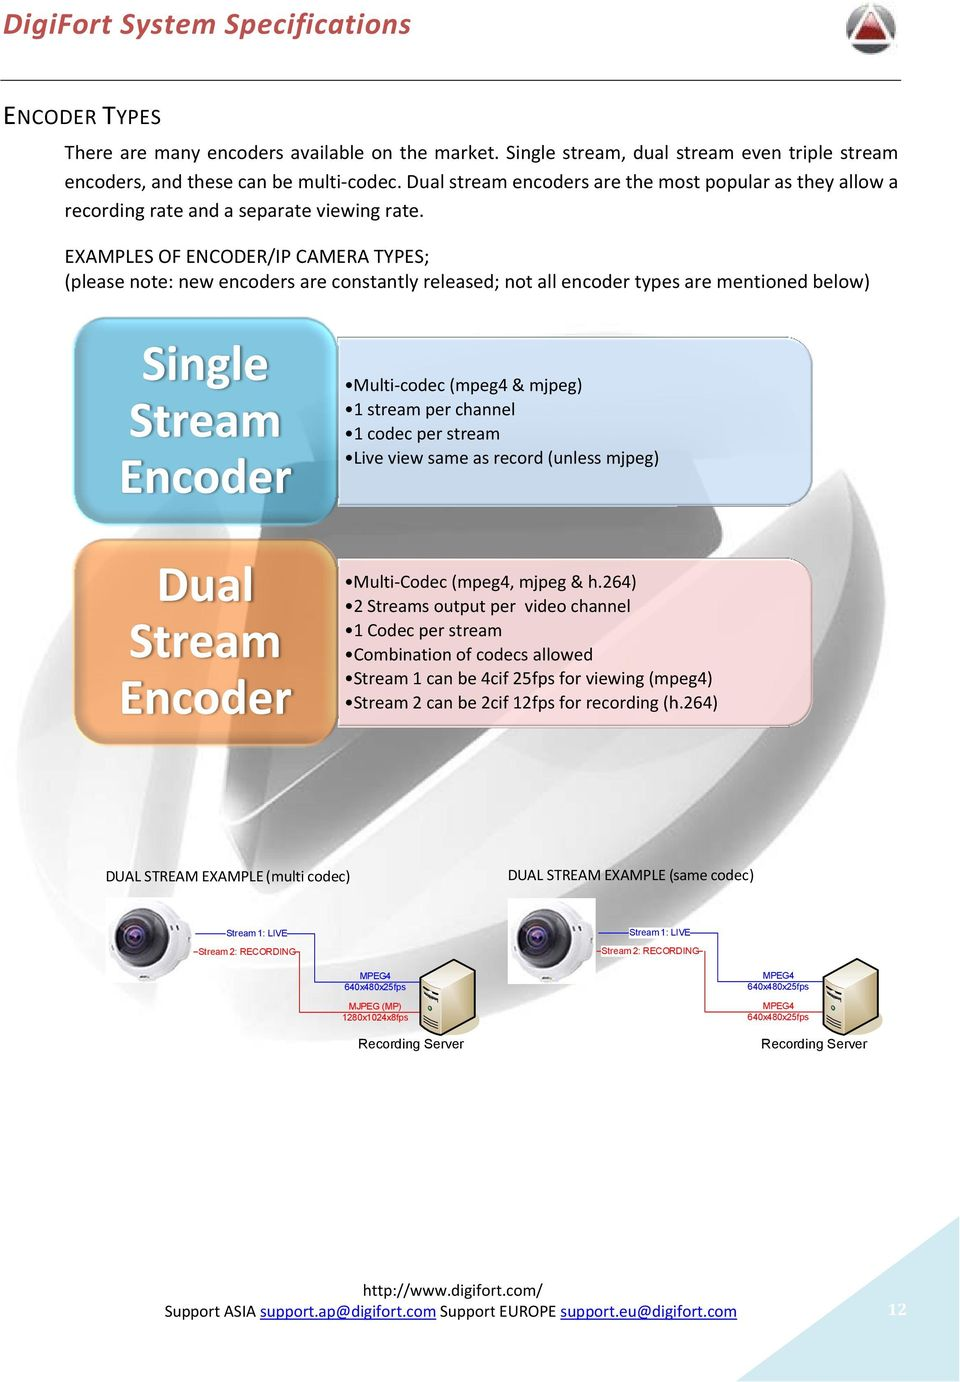 EXAMPLES OF ENCODER/IP CAMERA TYPES; (please note: new encoders are constantly released; not all encoder types are mentioned below) Single Stream Encoder Dual Stream Encoder Multi-codec (mpeg4 &